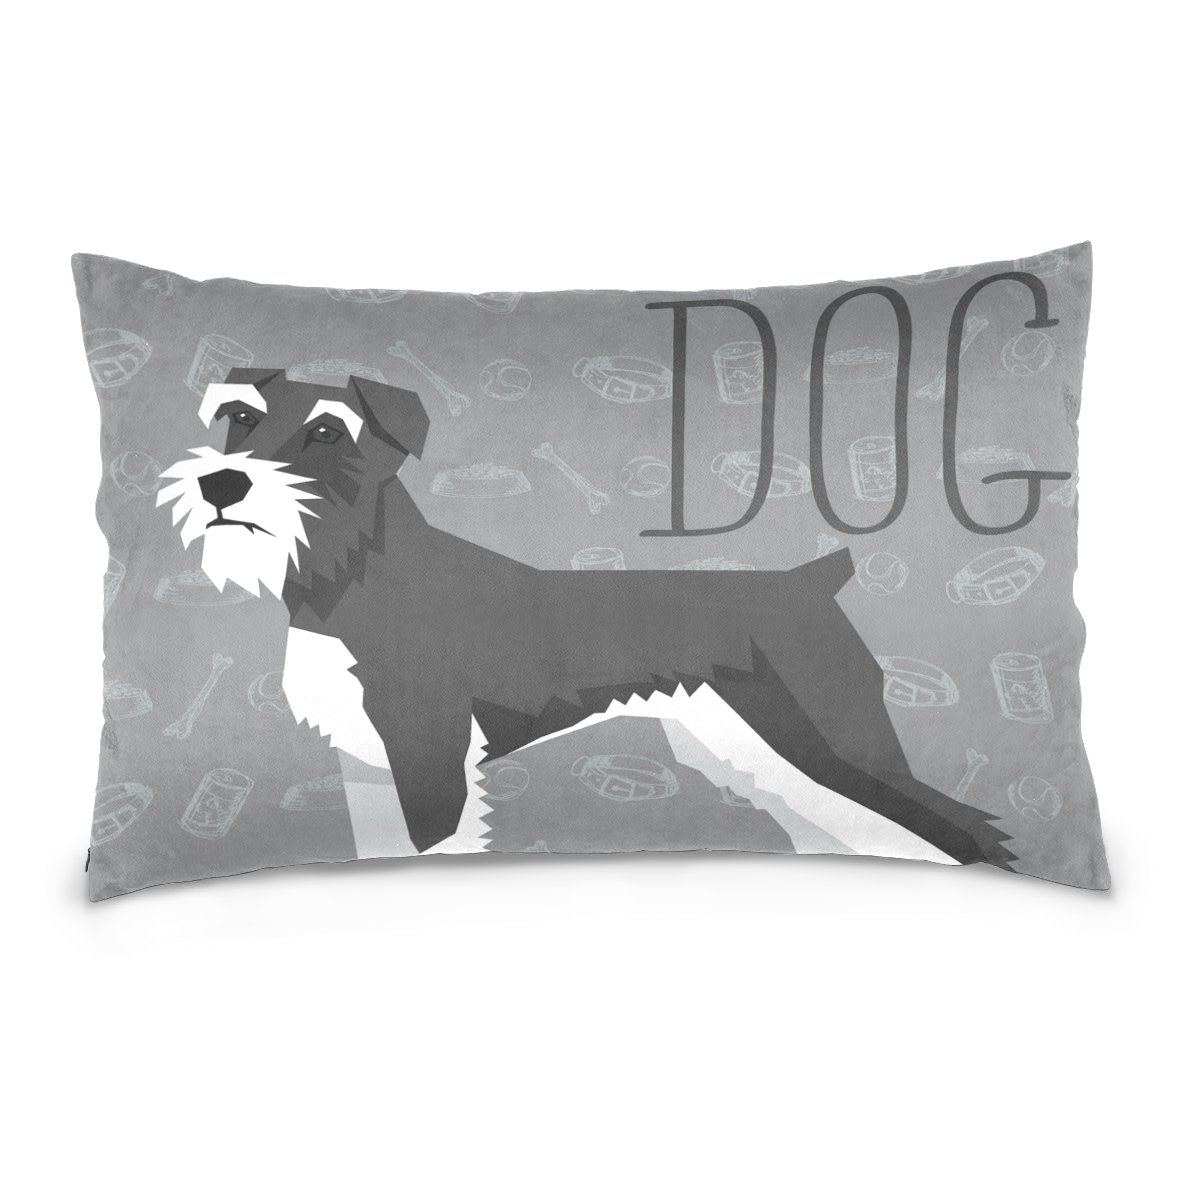 Pillow Covers Pillow Protectors Bed Bug Dust Mite Resistant Standard Pillow Cases Cotton Sateen Allergy Proof Soft Quality Covers with Cartoon Animal Dog for Bedding